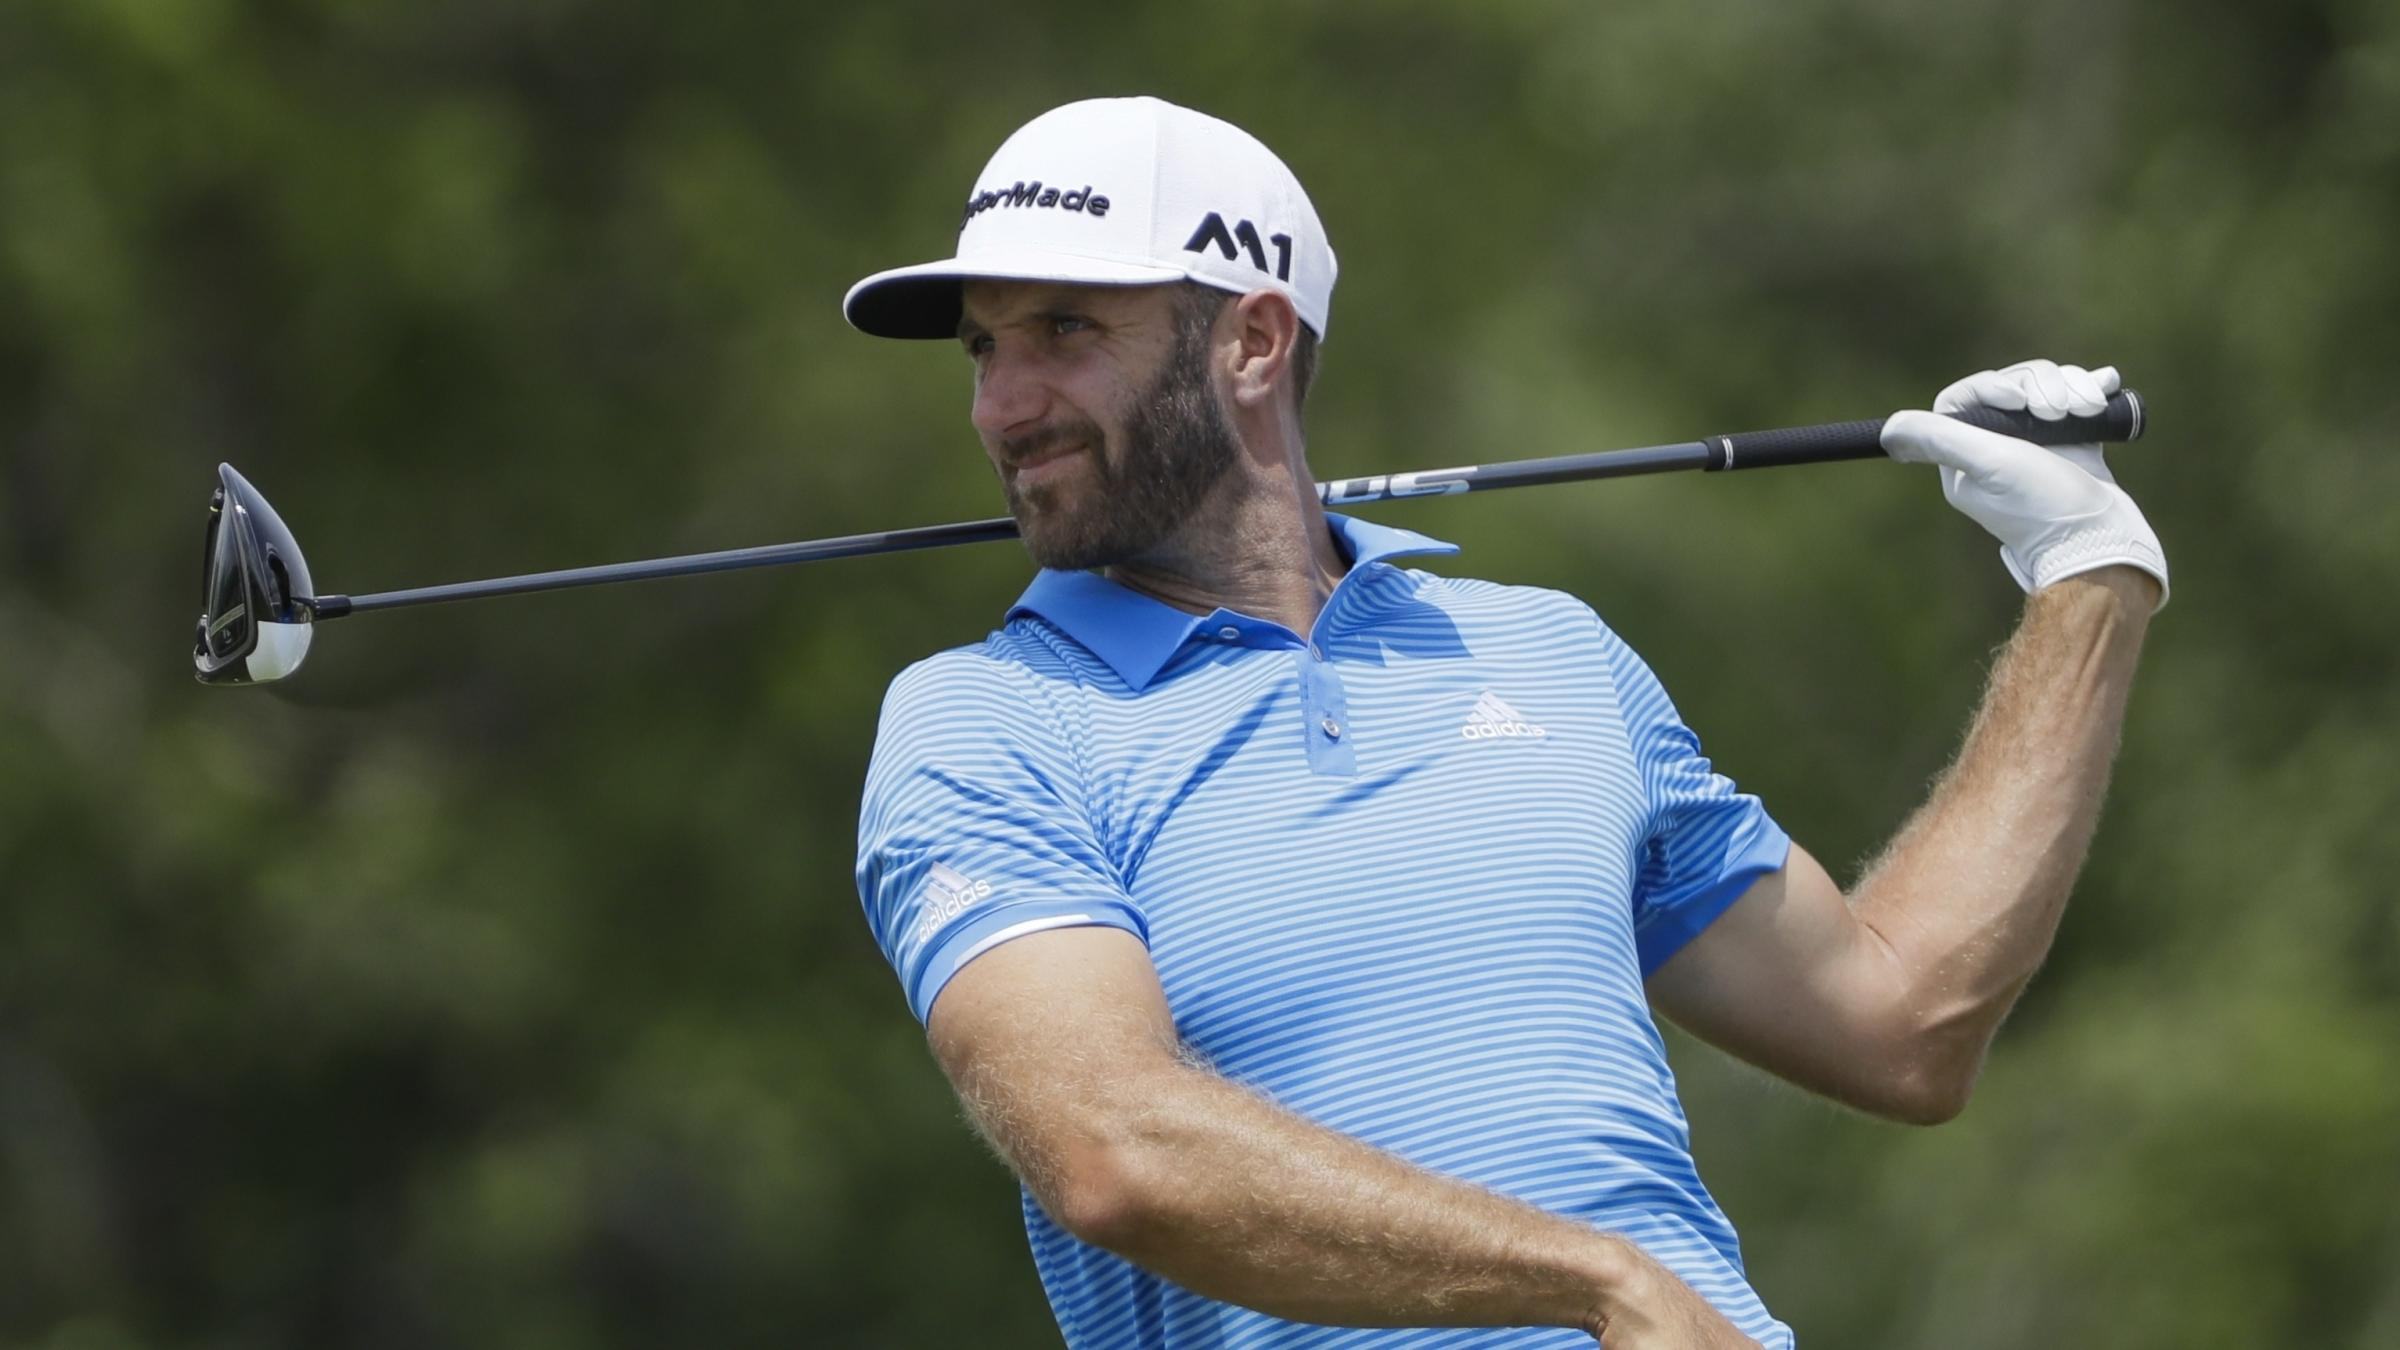 US Open Odds & Trends 2017: Dustin Johnson the Favorite